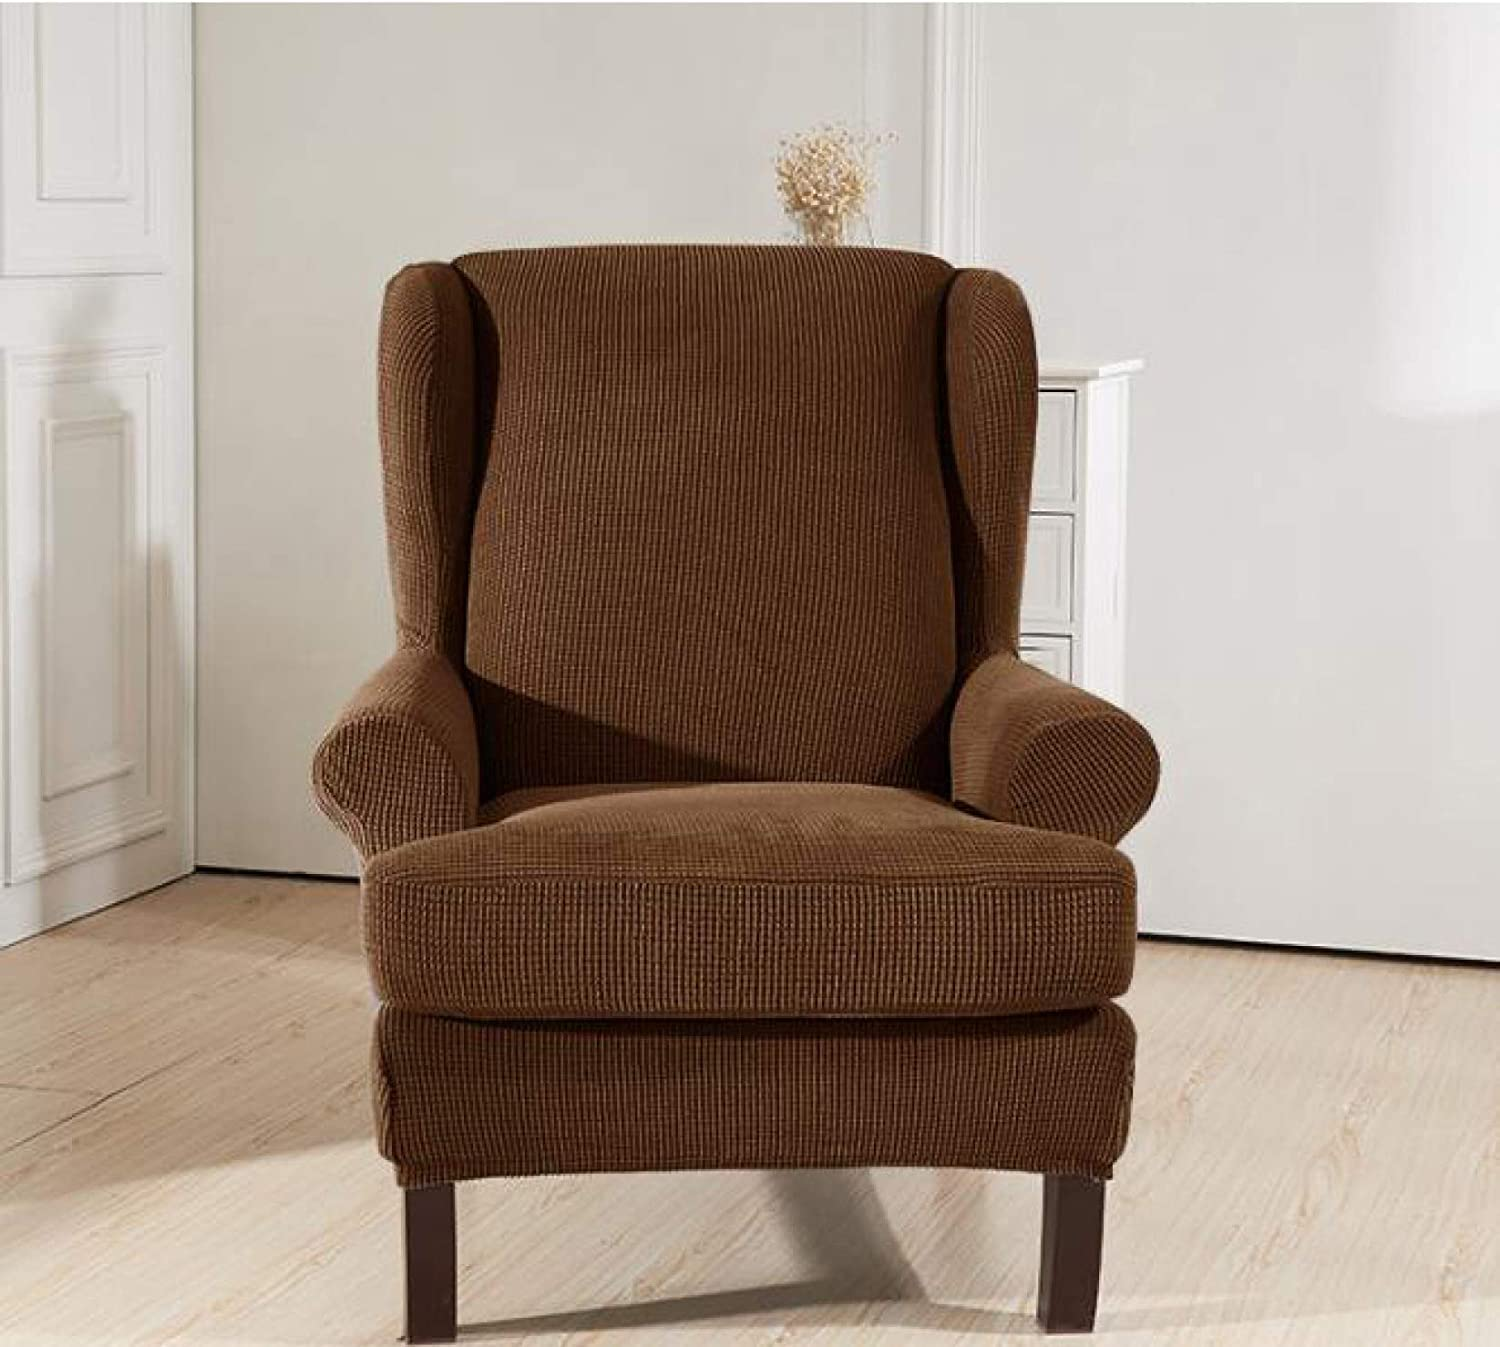 Fresno Mall BEOTARU Lowest price challenge Plaid Armchair Cover Large Recliner Covers for